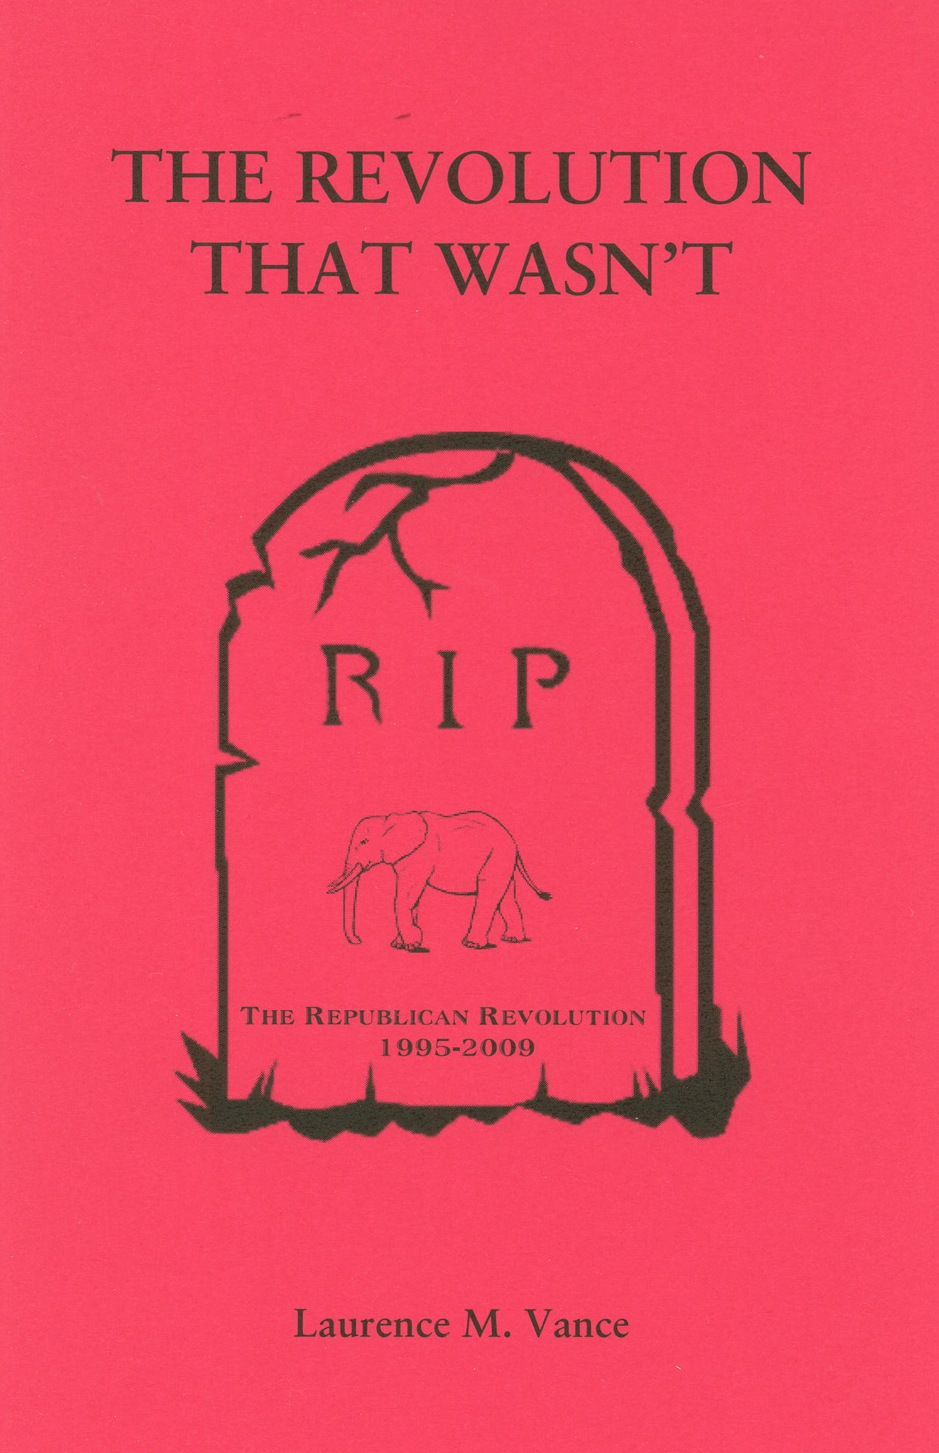 The Revolution that Wasn't, 36 pages, booklet, $5.95